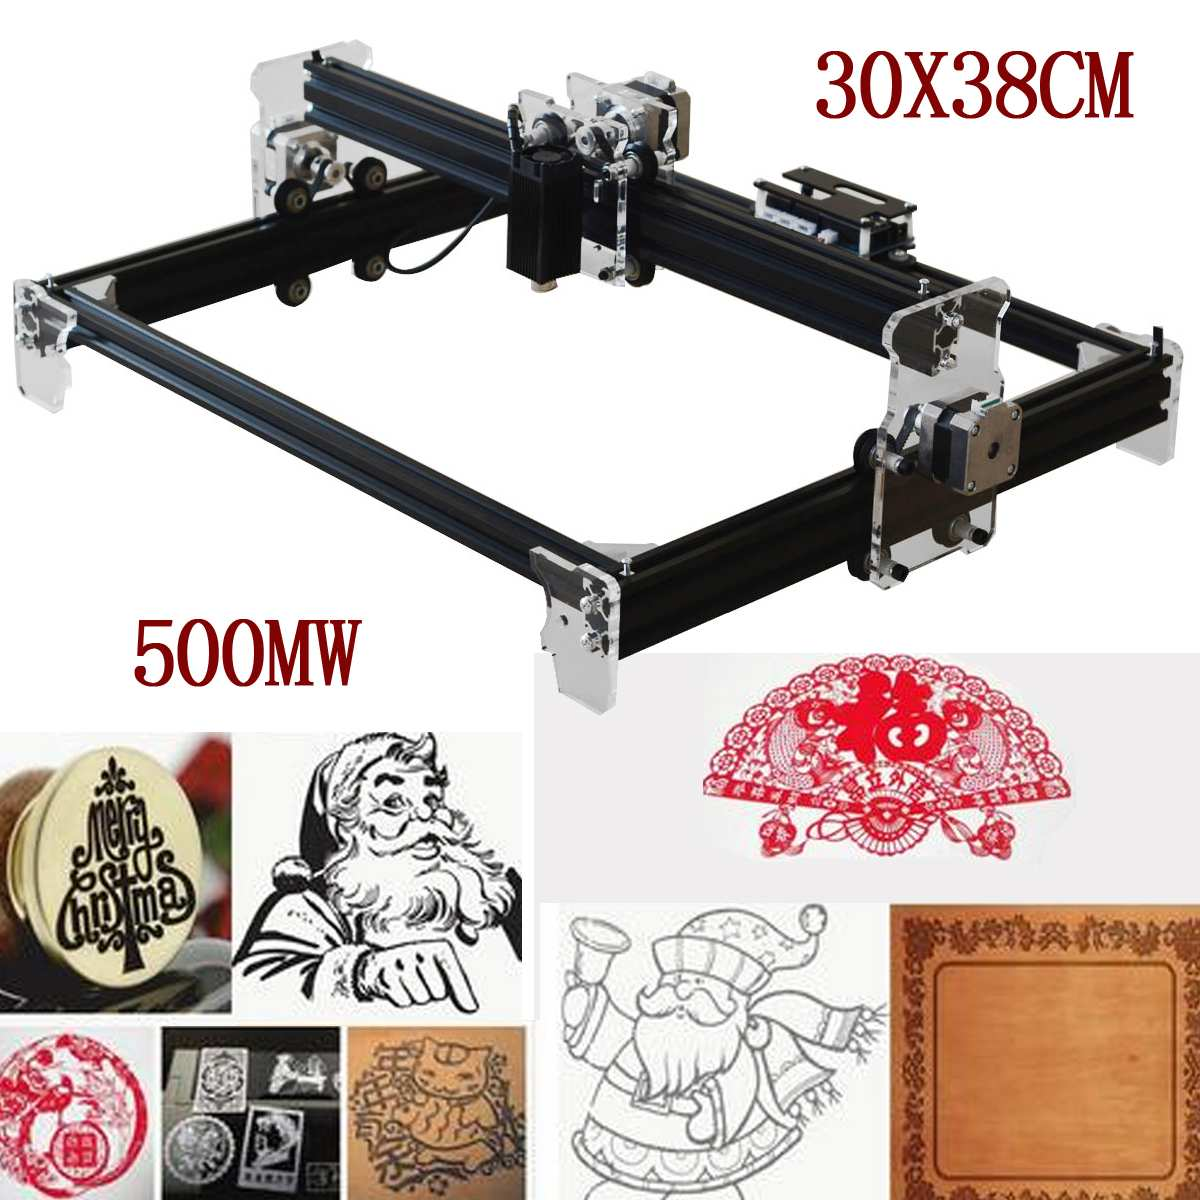 500MW/2500MW/5500MW A3 30X38CM DIY Mini Laser Engraver CNC DIY Logo Mark Printer Cutter Wood Router Carving Engraving Machine500MW/2500MW/5500MW A3 30X38CM DIY Mini Laser Engraver CNC DIY Logo Mark Printer Cutter Wood Router Carving Engraving Machine